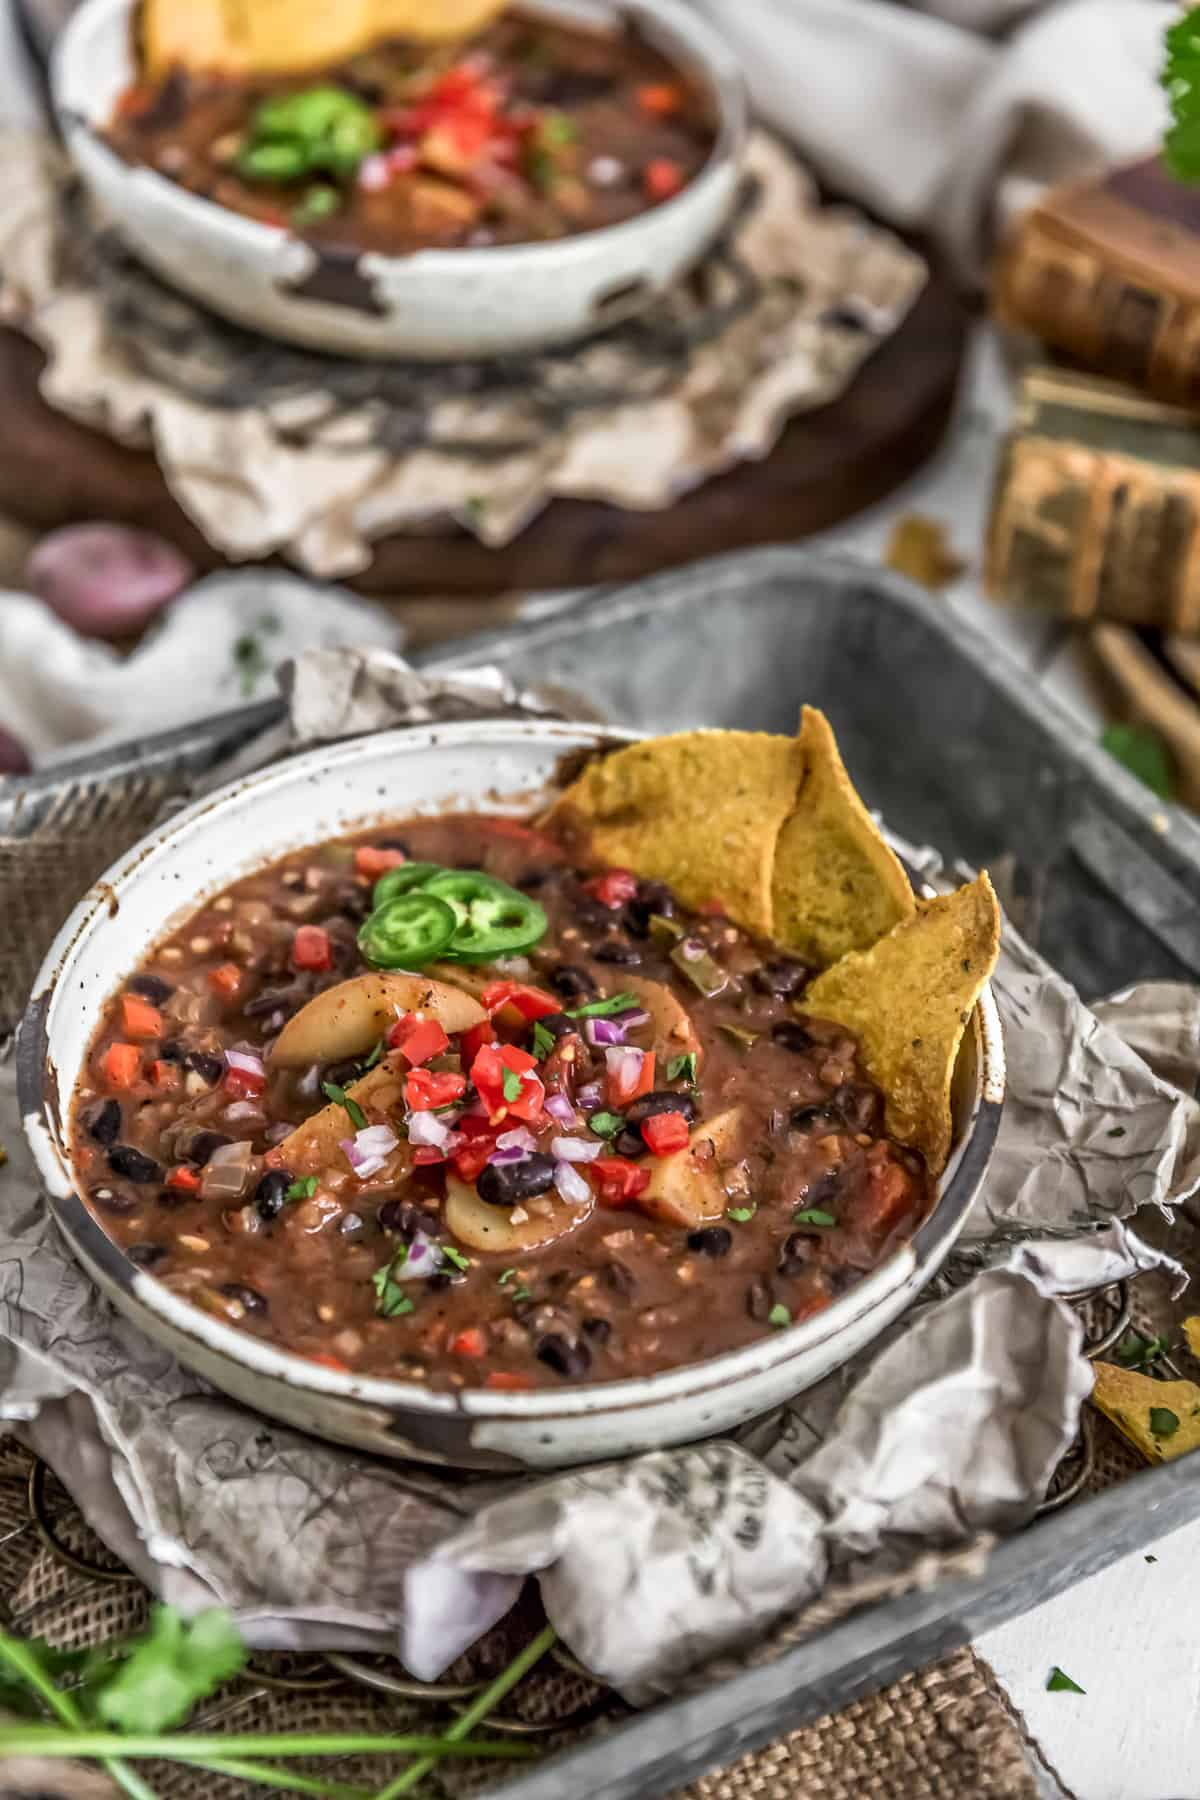 Bowl of Spicy Black Bean Potato Stew